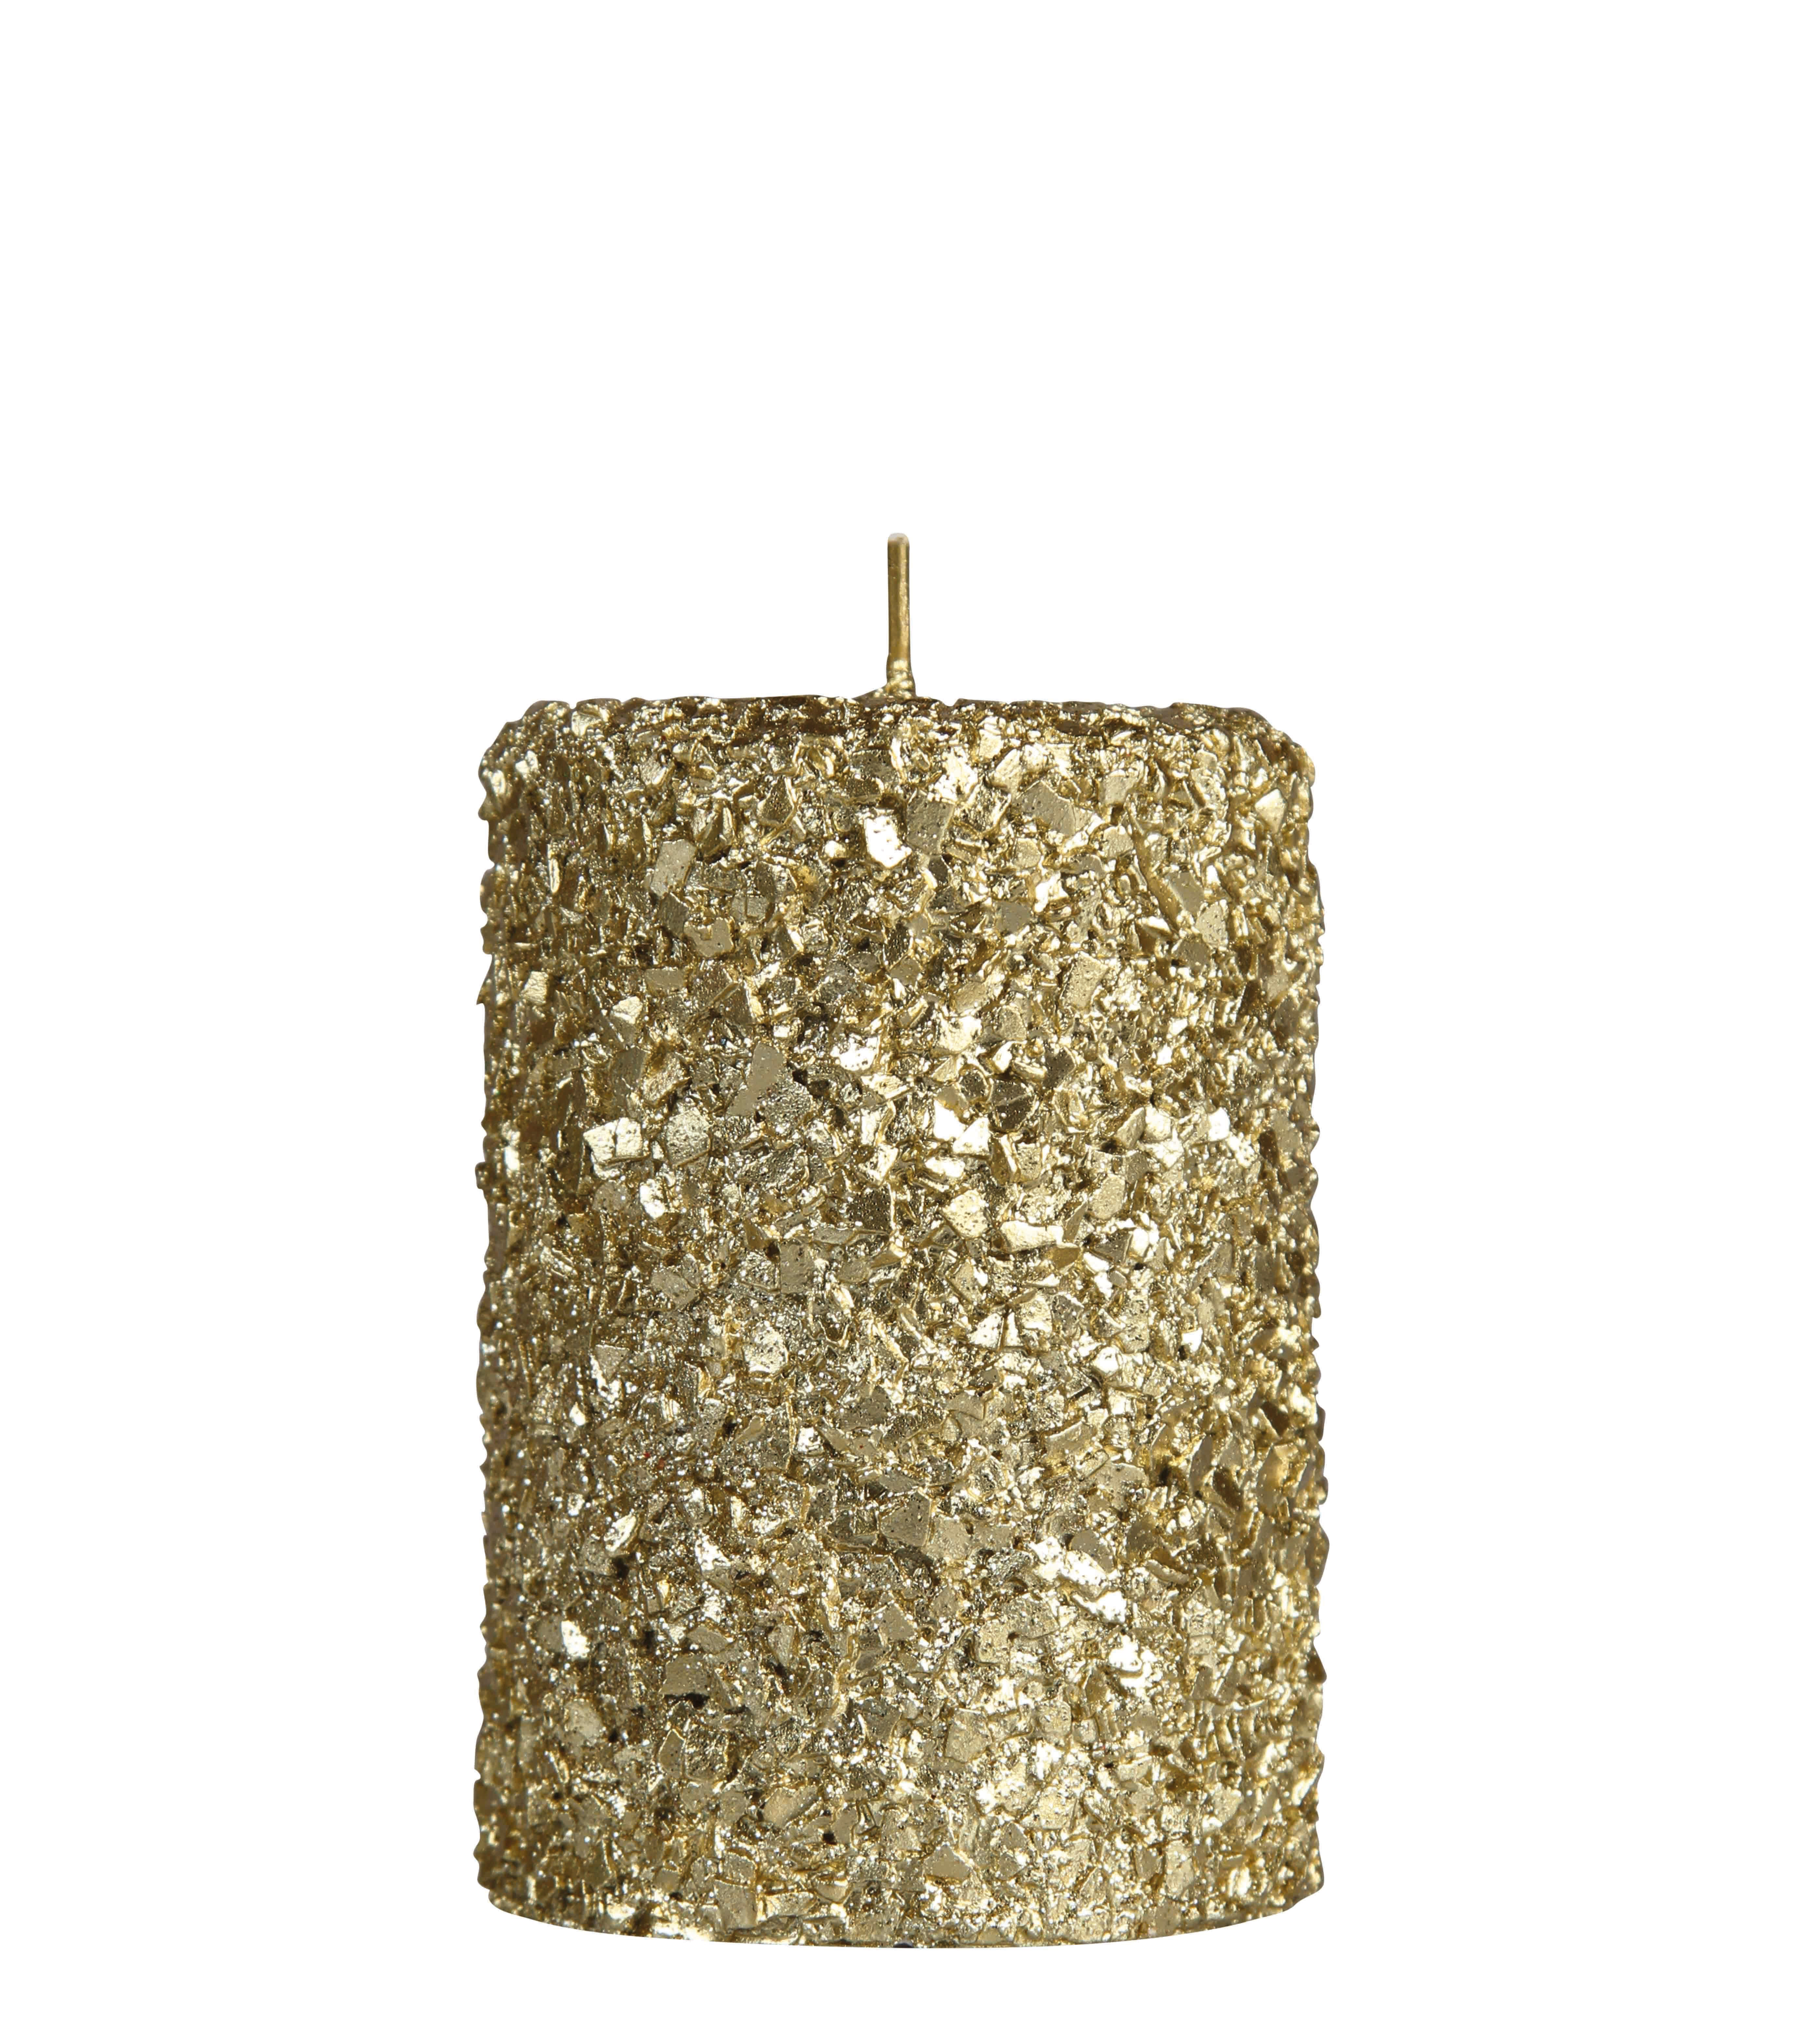 Decoration - Candles & Candle Holders - Pillar Candle - / Small - H 10 cm by & klevering - Small / Sequinned gold - Wax